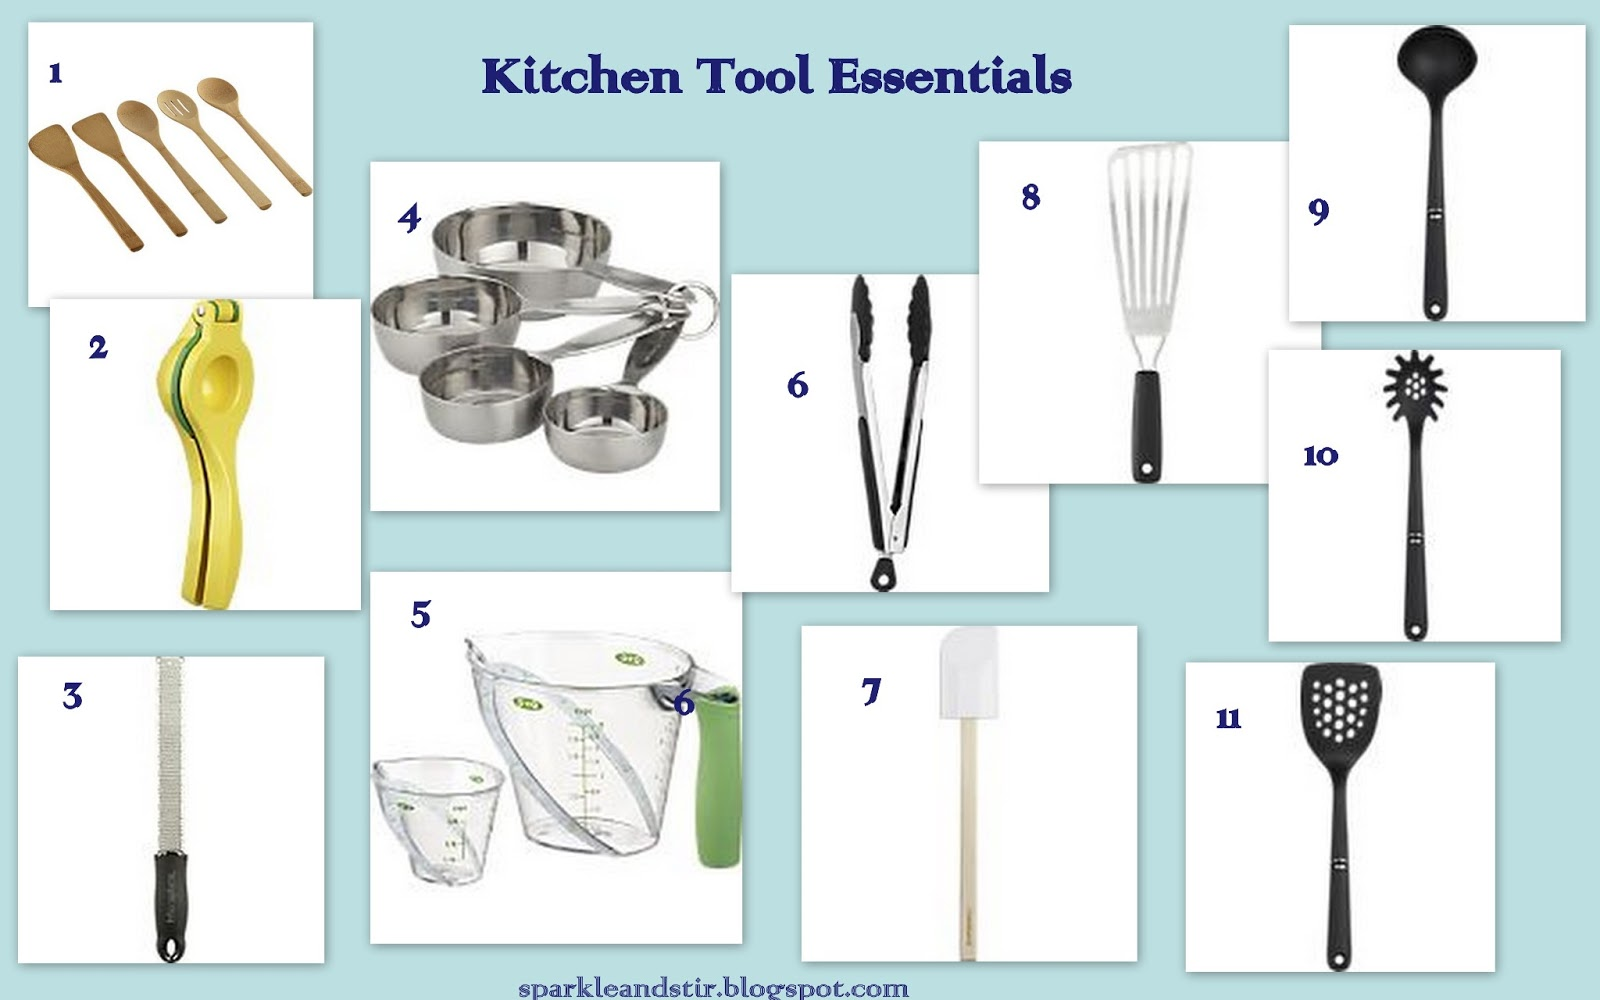 Kitchen utensils list with pictures and uses - Kitchen Tools Utensils And Their Uses